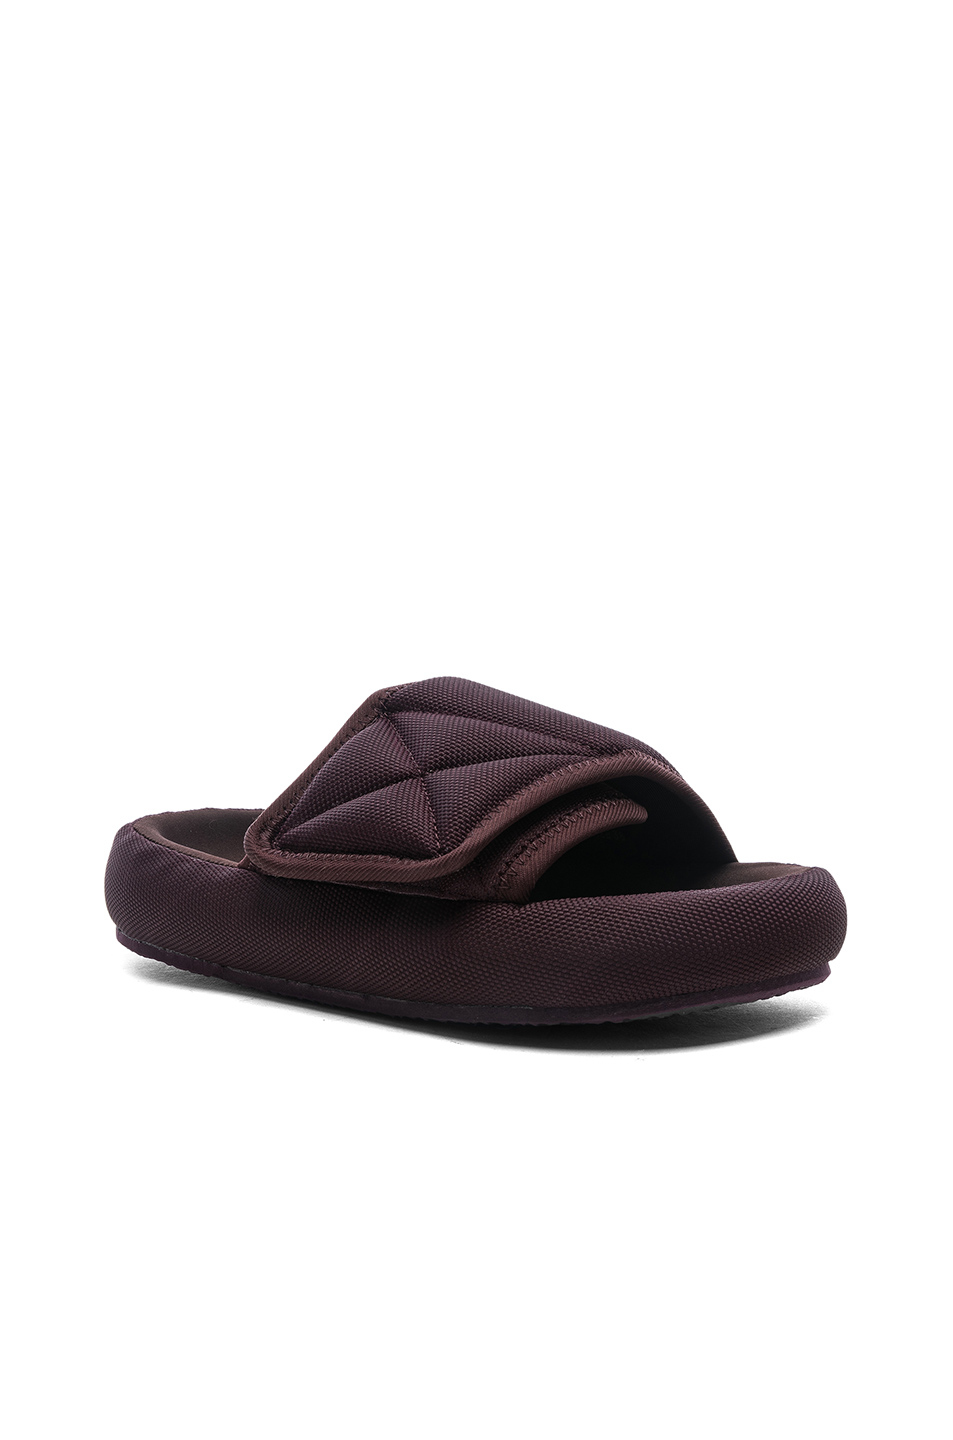 cb759b3a6a8e Buy Original YEEZY Season 6 Nylon Slippers at Indonesia